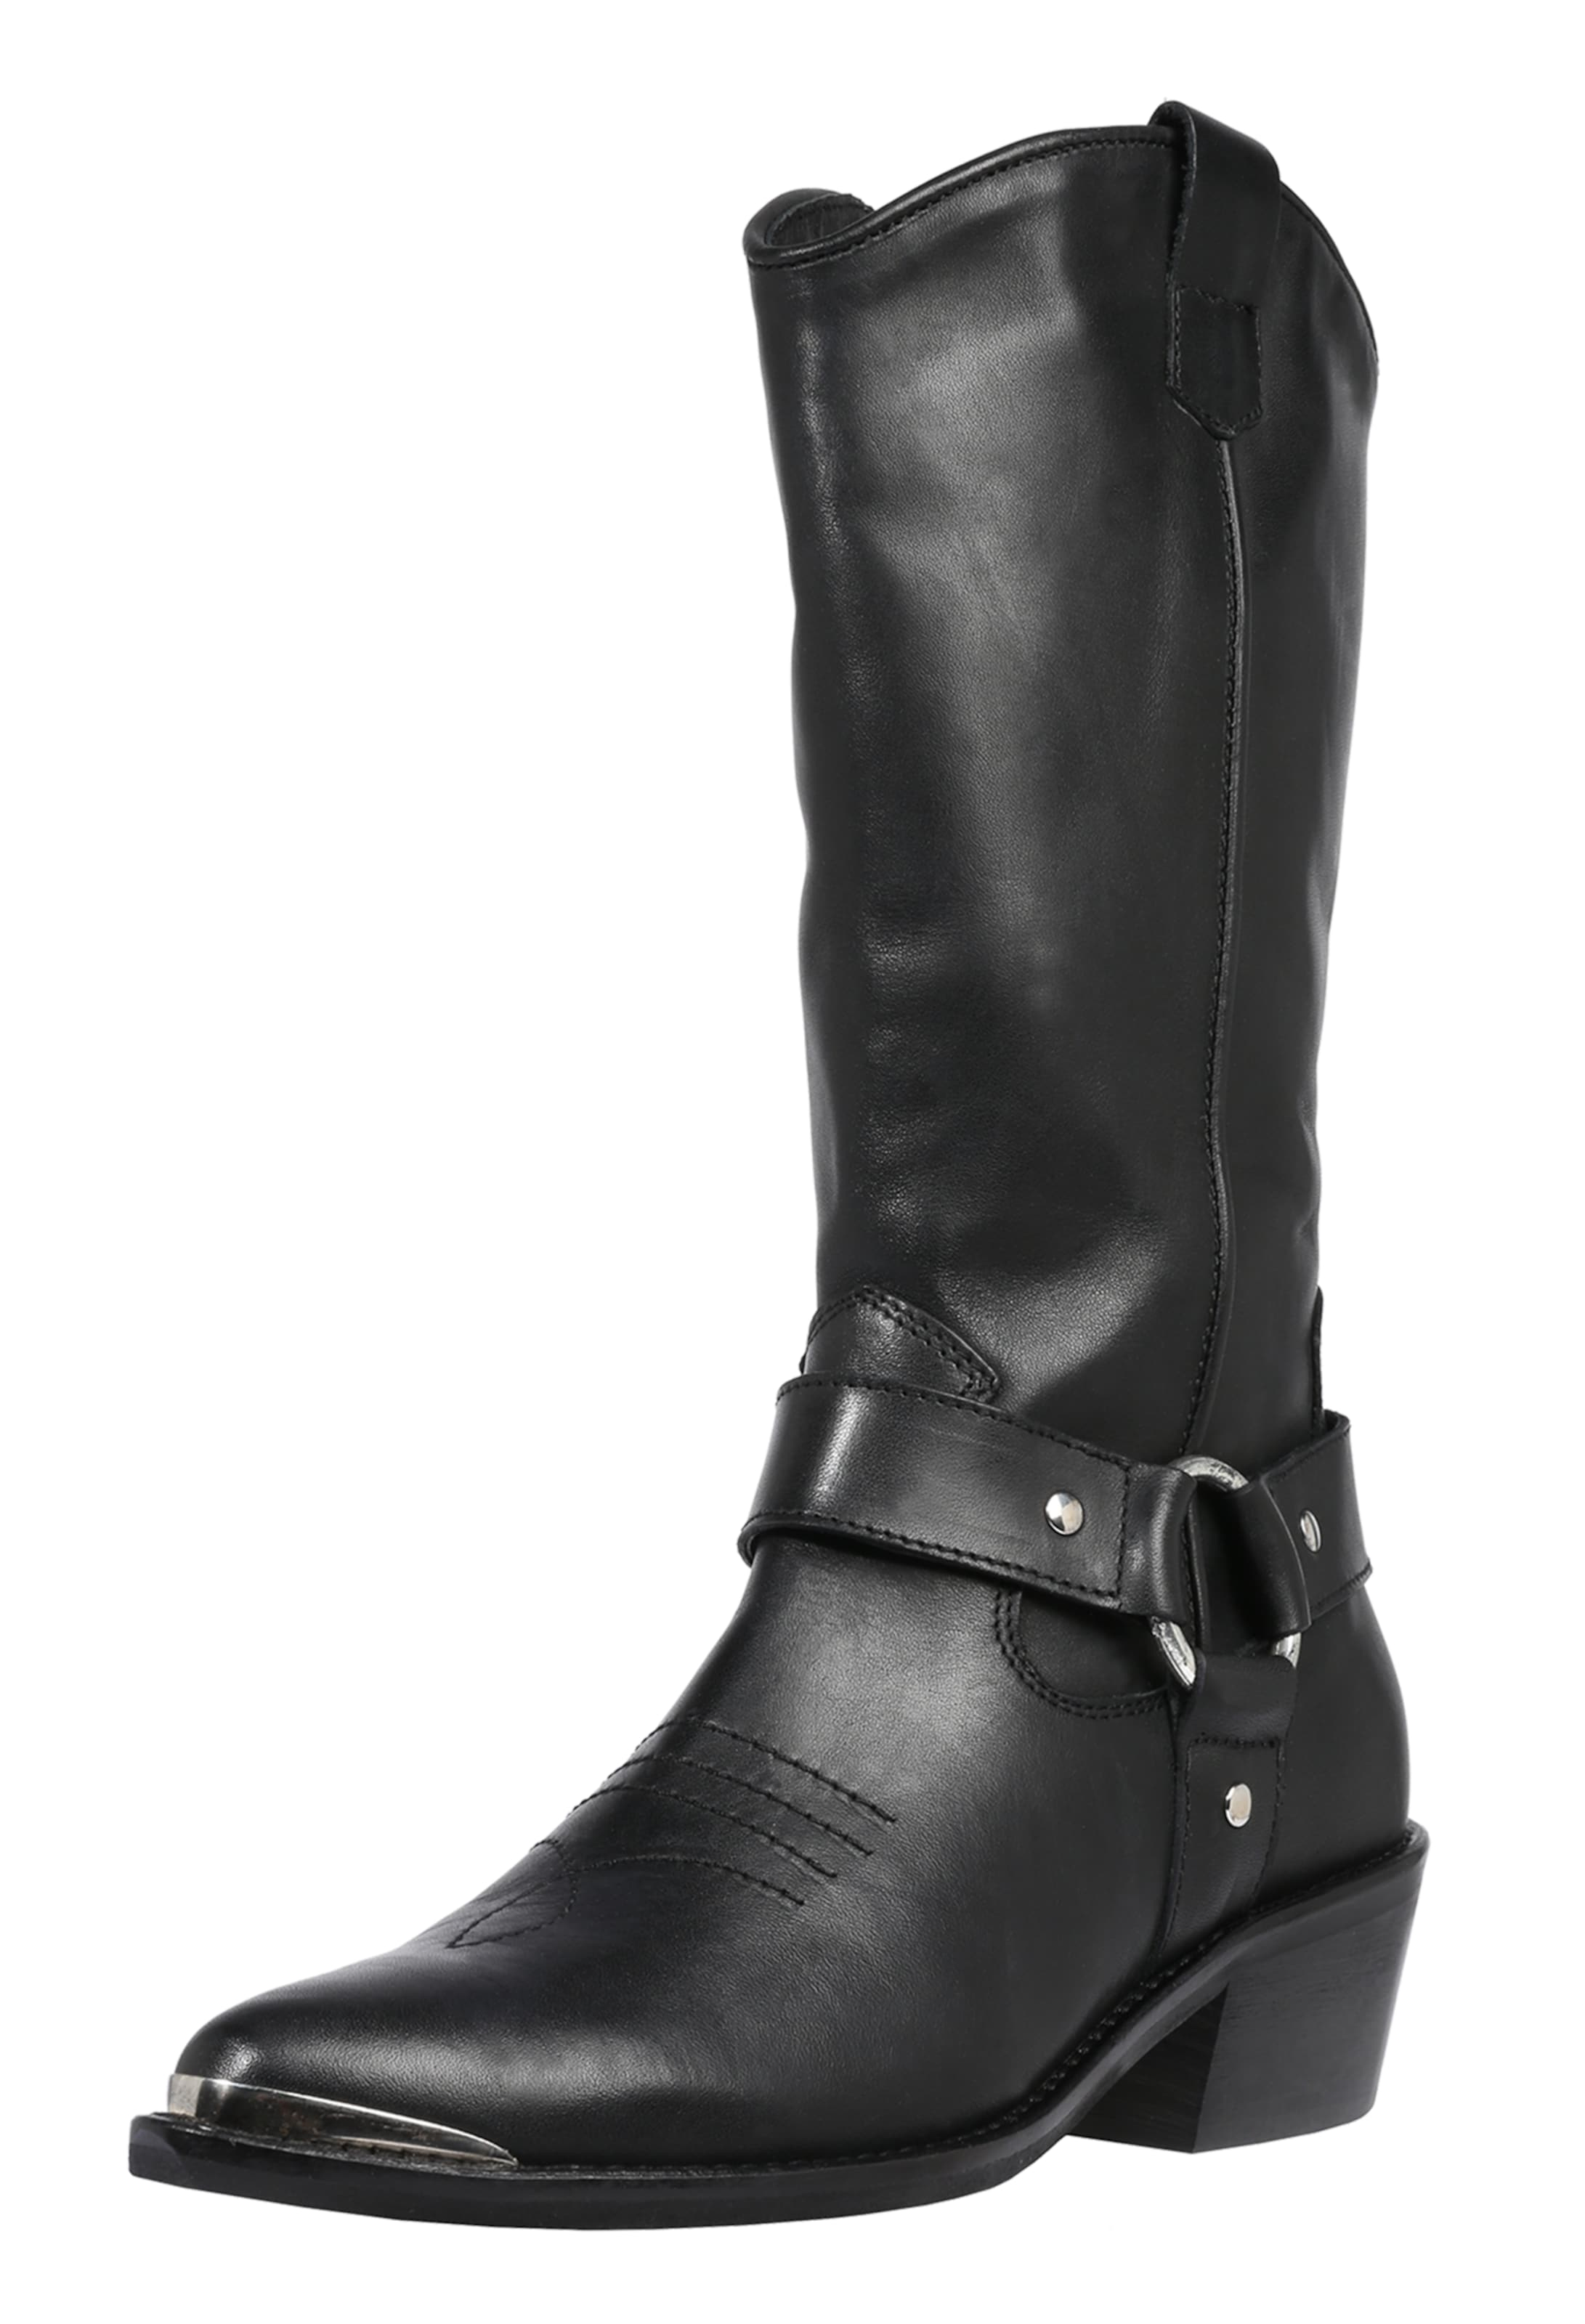 In 'ronja' Schwarz Cowboystiefel About You lJc3T5uFK1